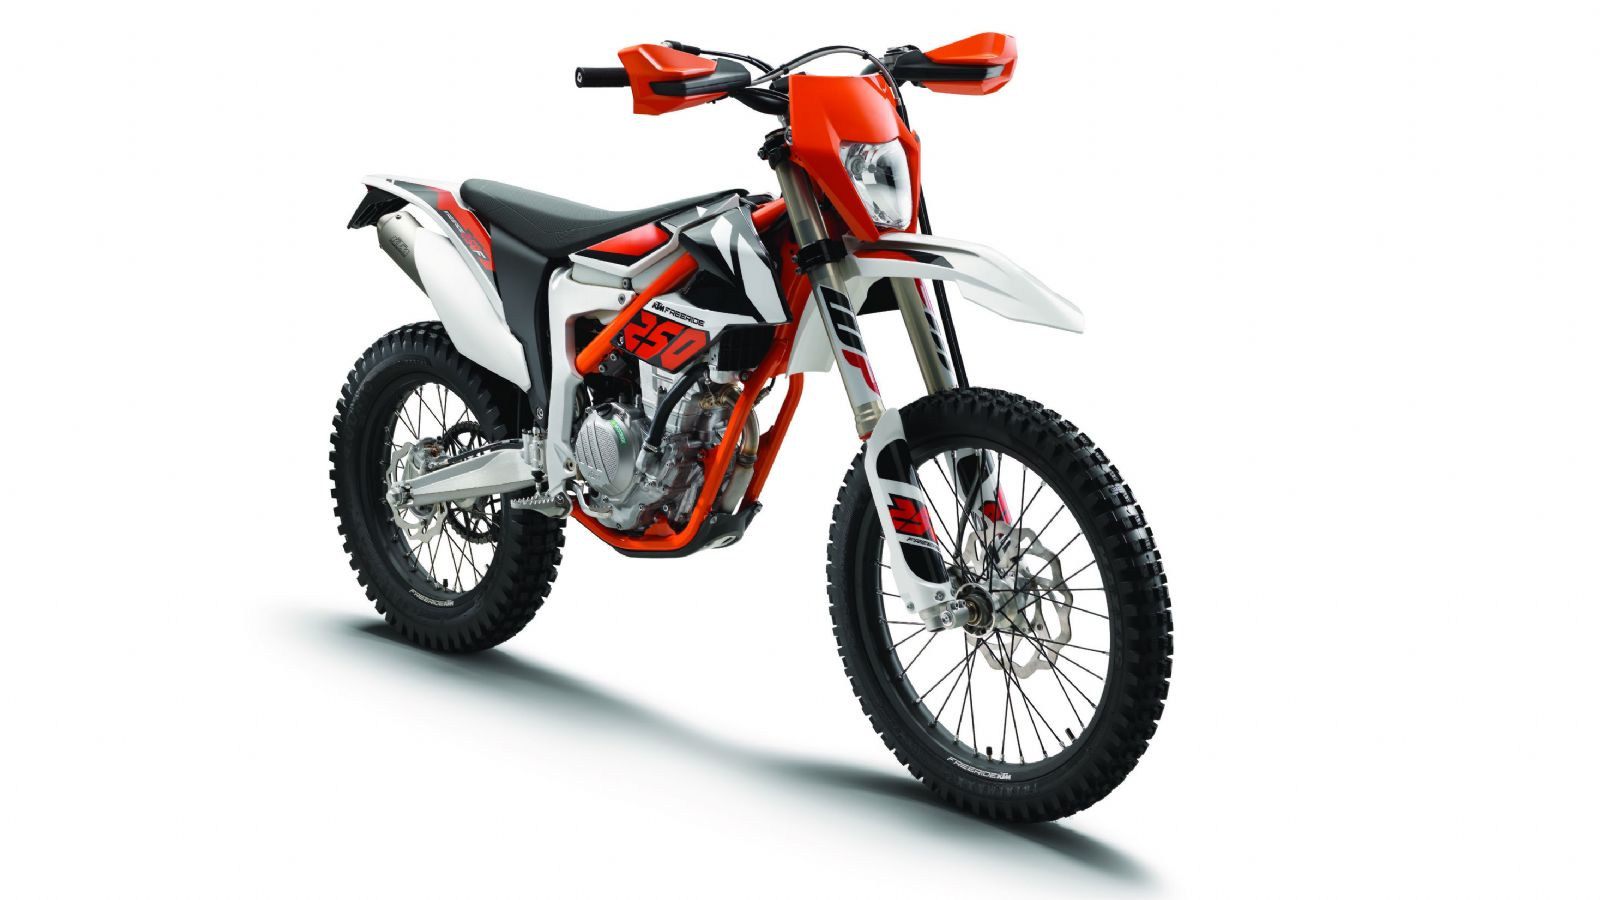 n ktm freeride 250 f freeride 250 f ktm. Black Bedroom Furniture Sets. Home Design Ideas